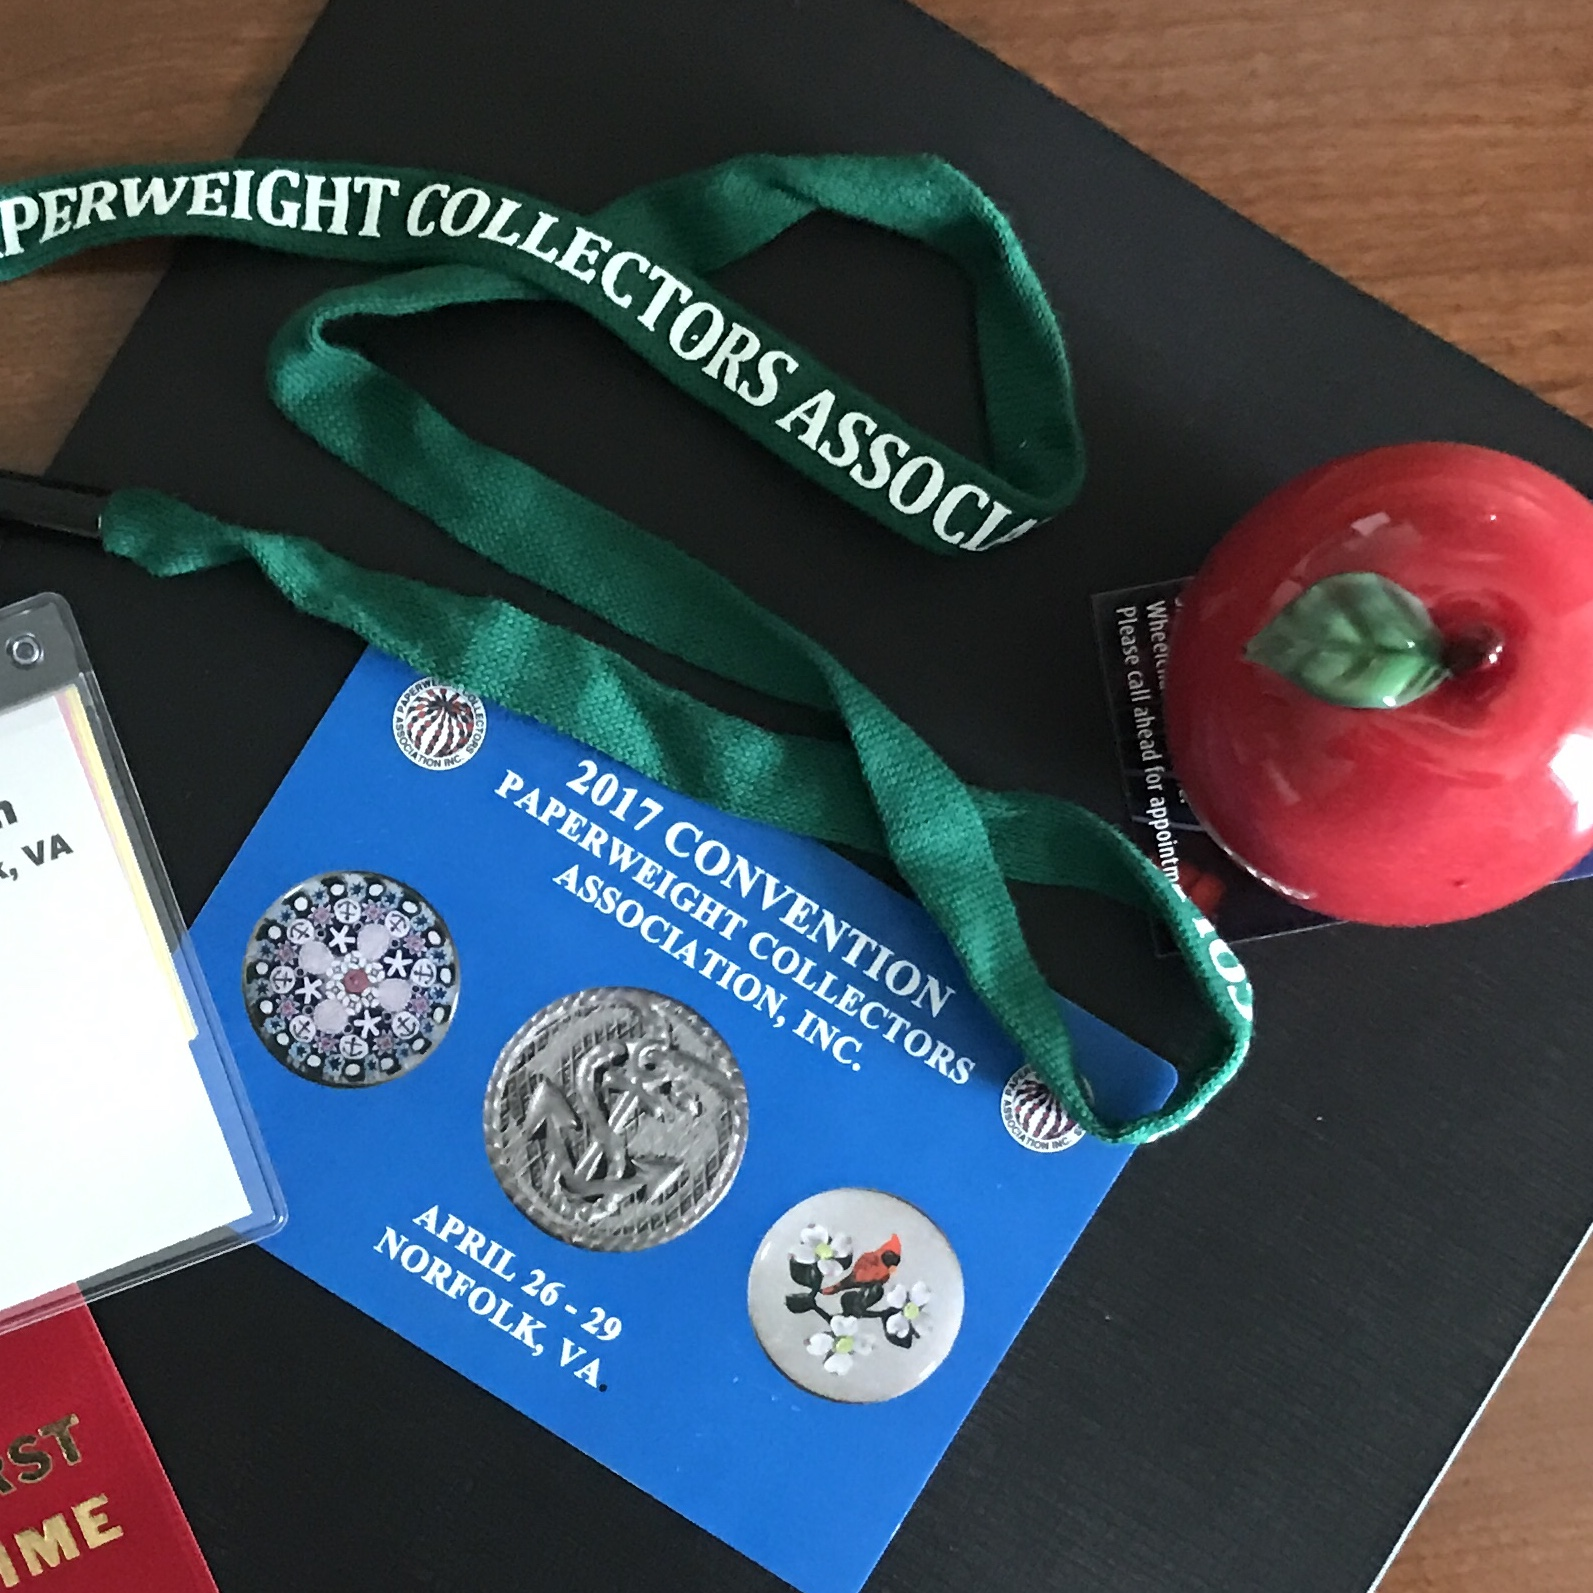 2017 Norfolk Convention Badge, Apple Paperweight and Folder